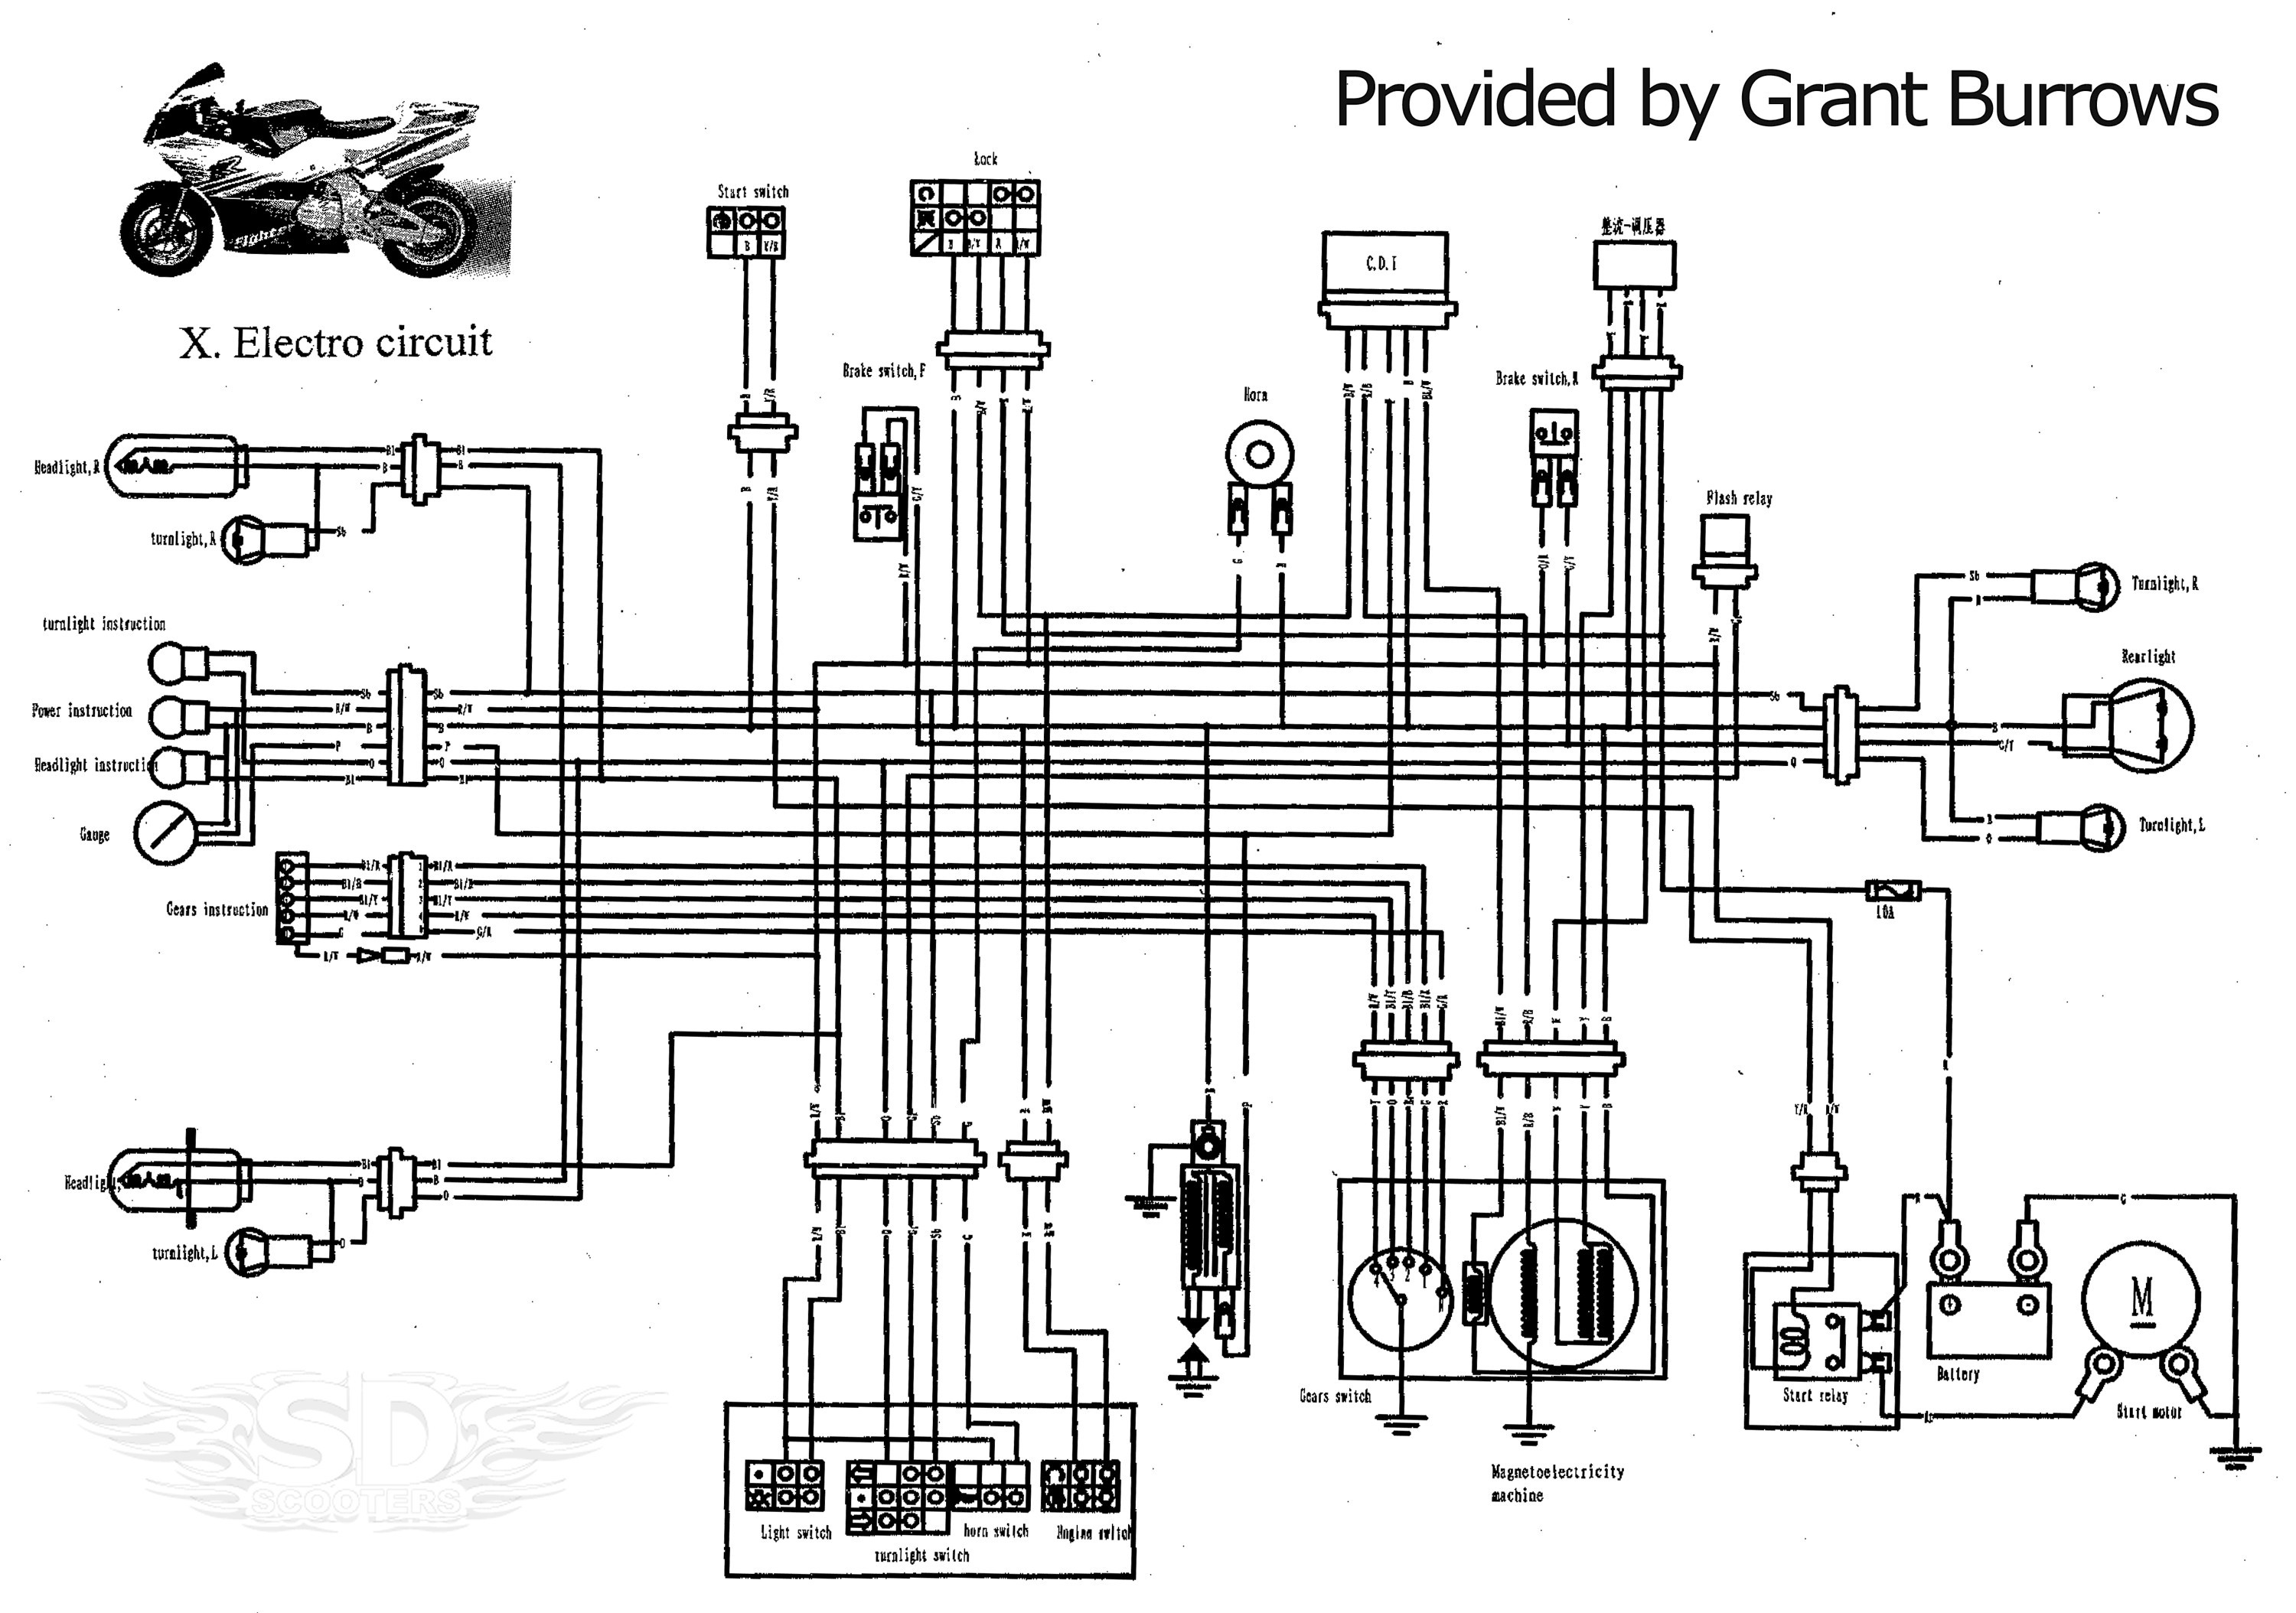 49cc pocket bike engine diagram